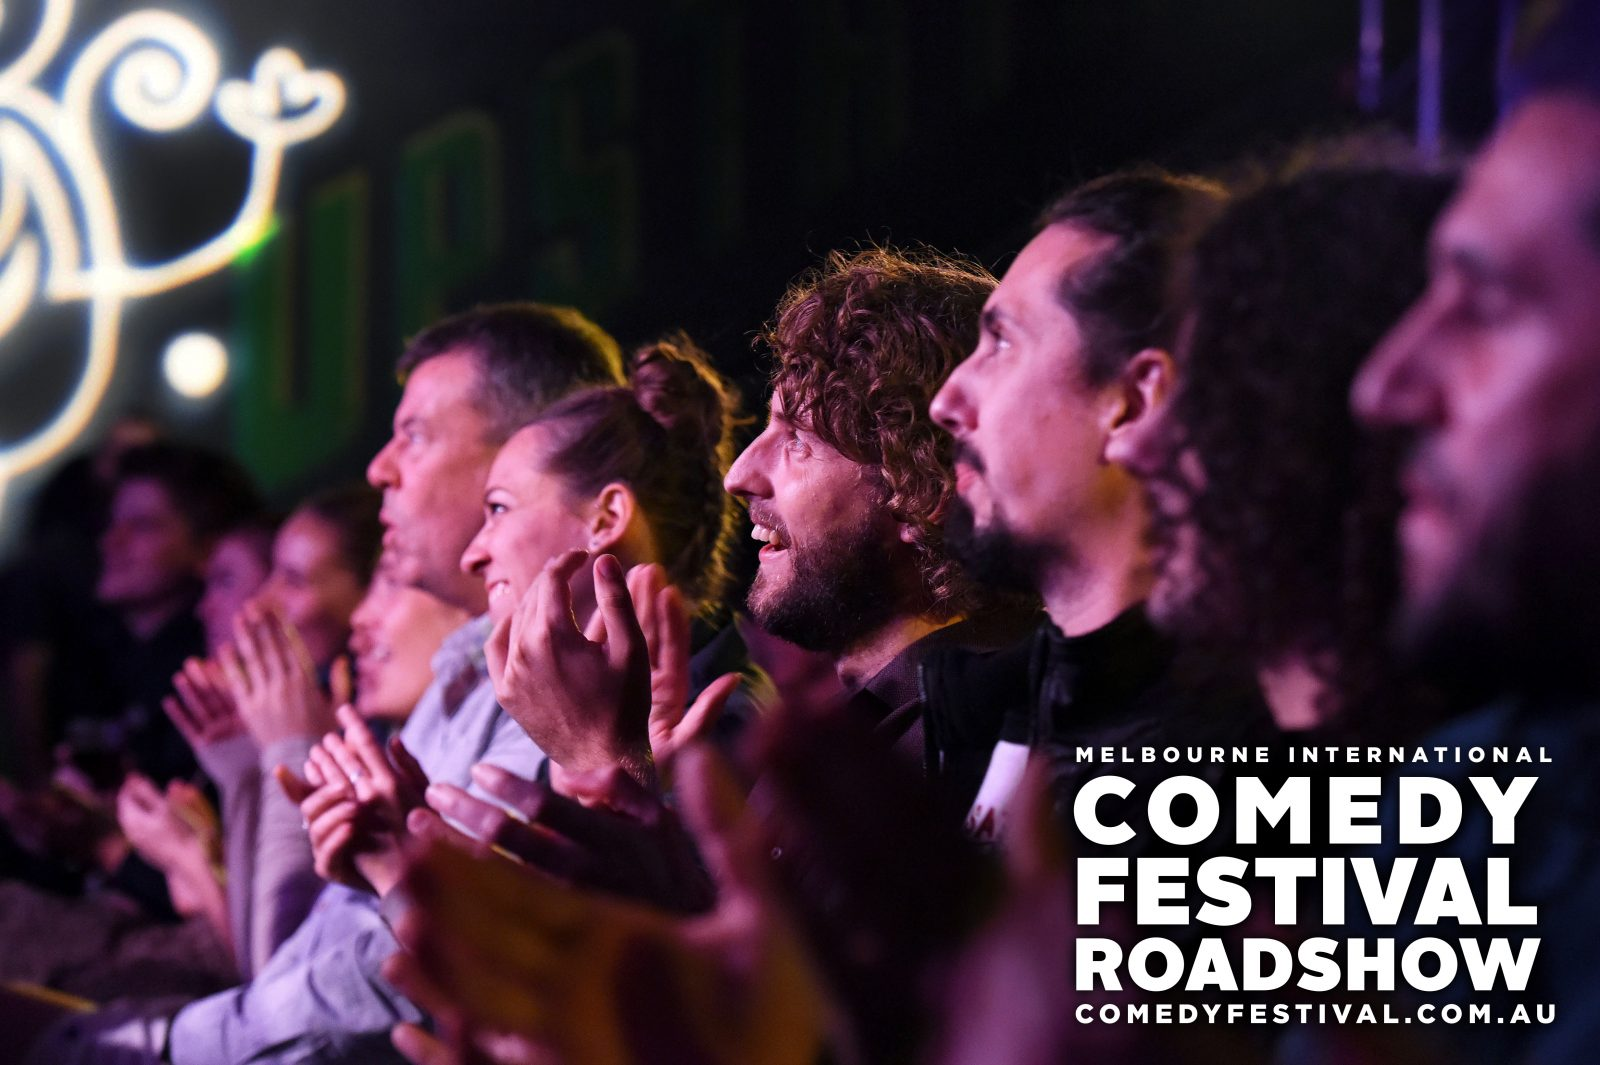 MELBOURNE INTERNATIONAL COMEDY FESTIVAL ROADSHOW at the Theatre Royal, Hobart